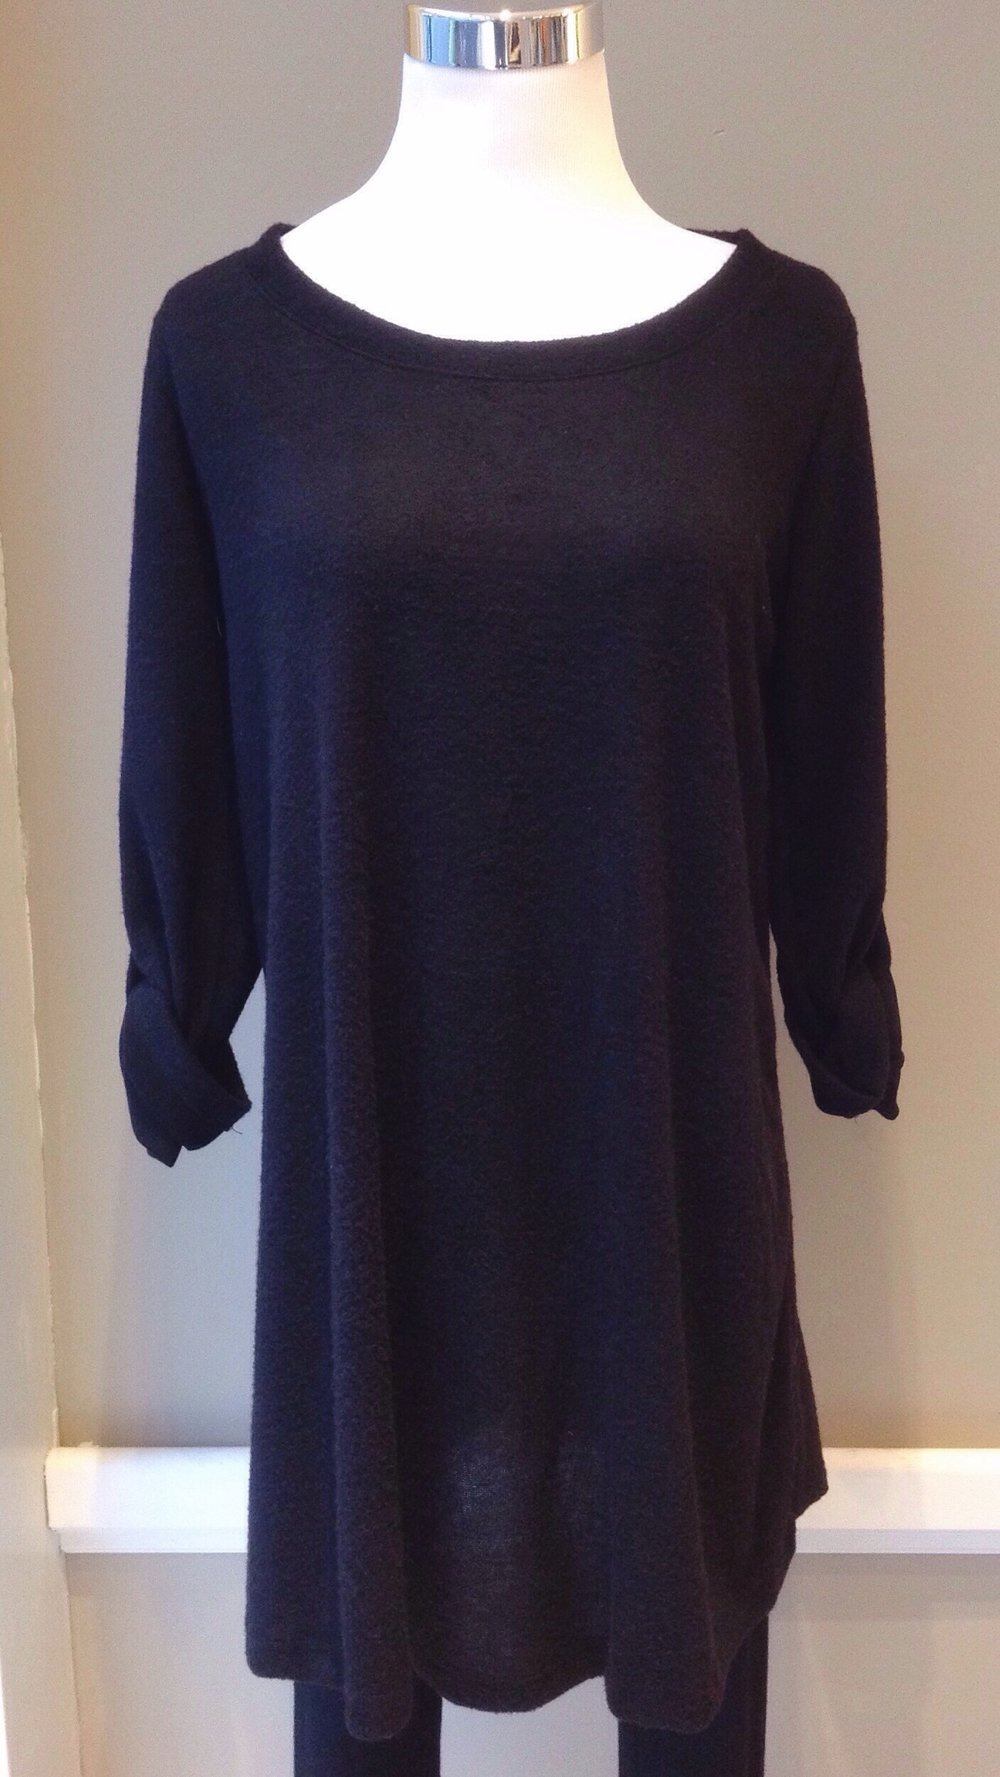 Soft sweater knit tunic with roll tab sleeves, $35